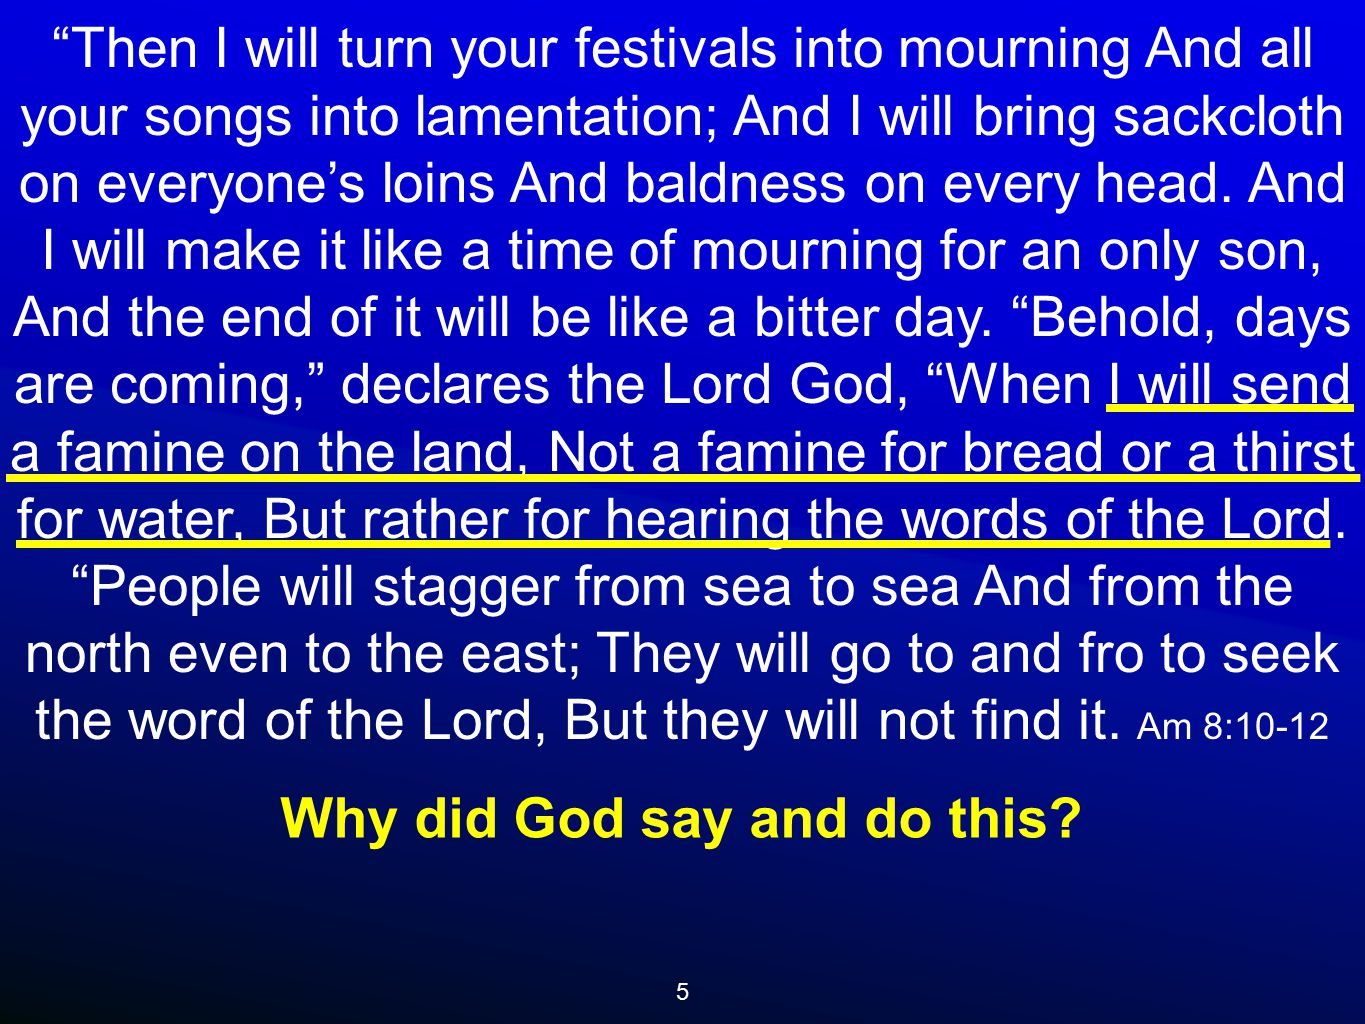 6 Then I will turn your festivals into mourning And all your songs into lamentation; And I will bring sackcloth on everyone's loins And baldness on every head.